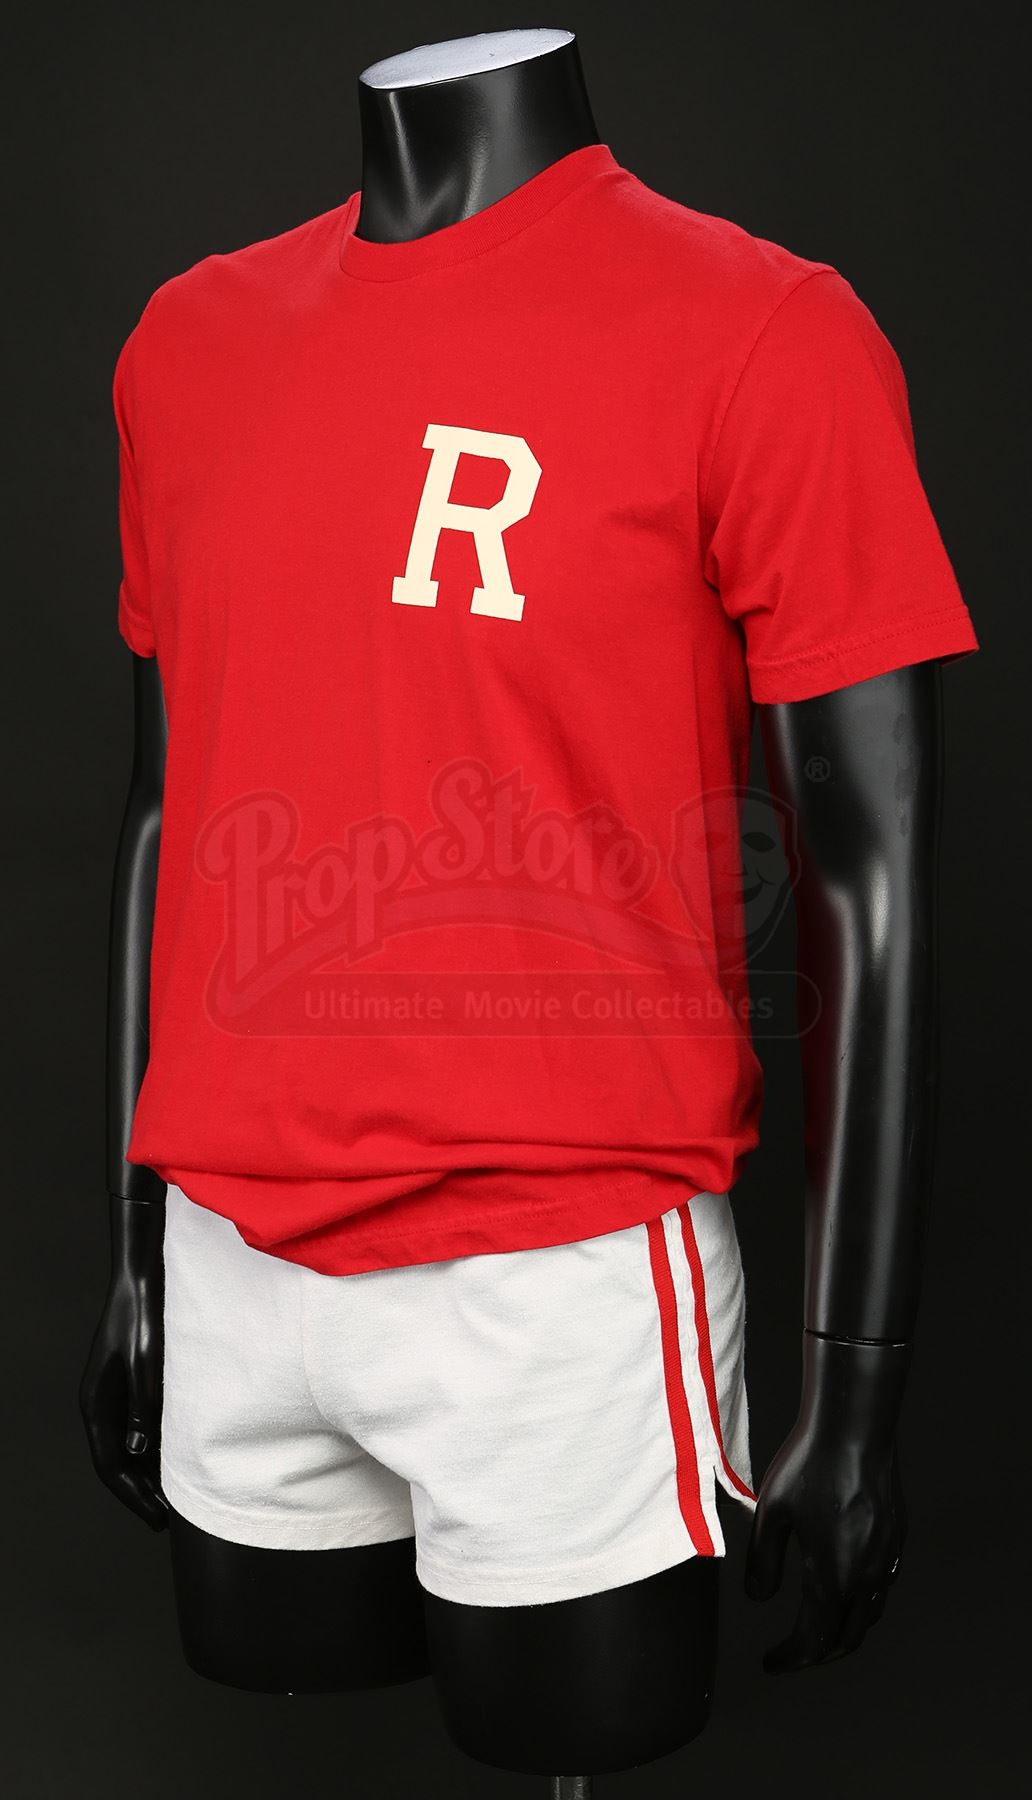 Rydell High Male Cheerleader Costume Current Price 90